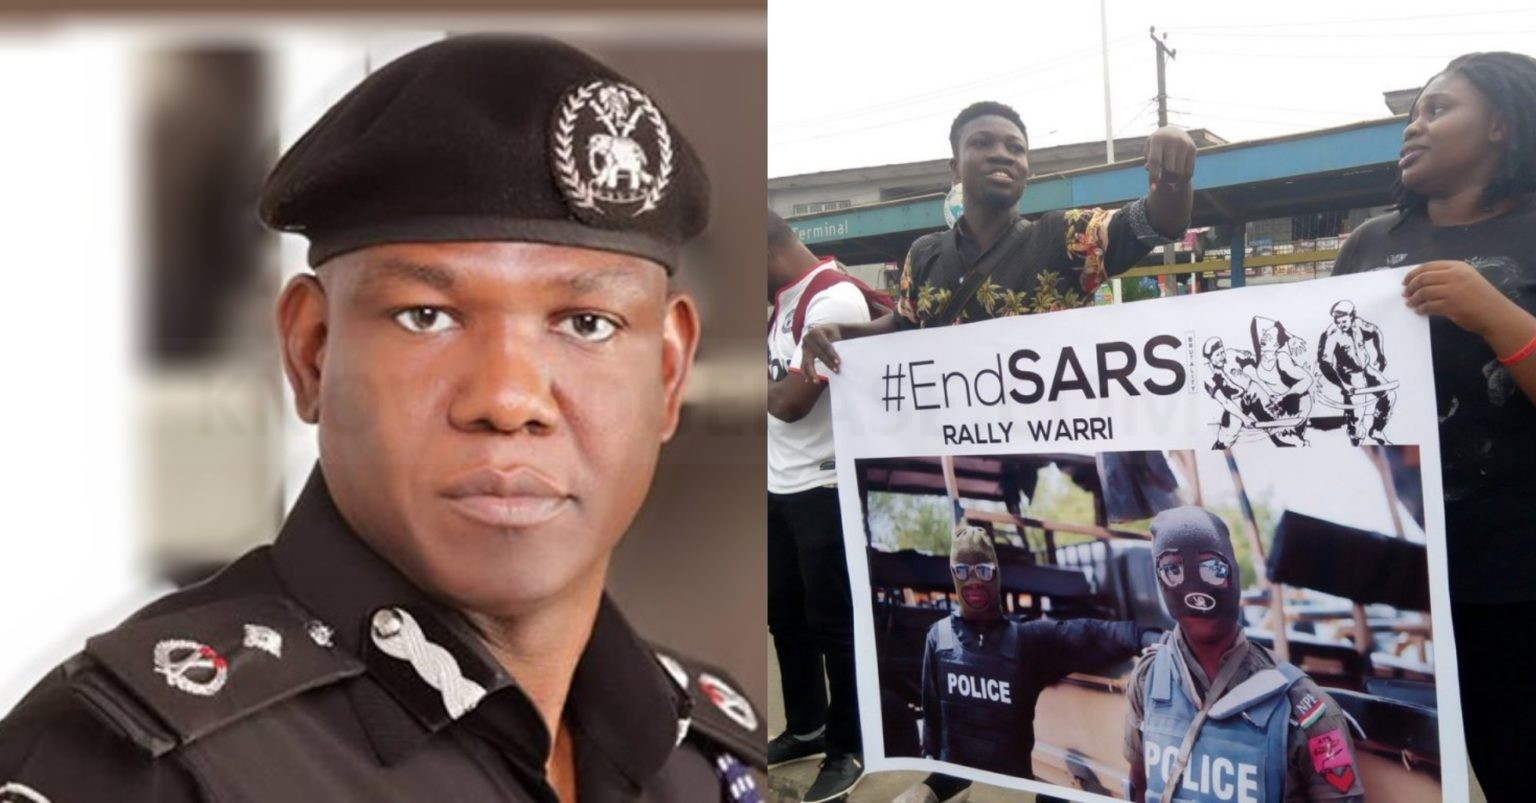 #ENDSARS : 'It Will Be Difficult To Scrap SARS Because They Are Involved In Fighting Boko Haram' — Police PRO, Frank Mba